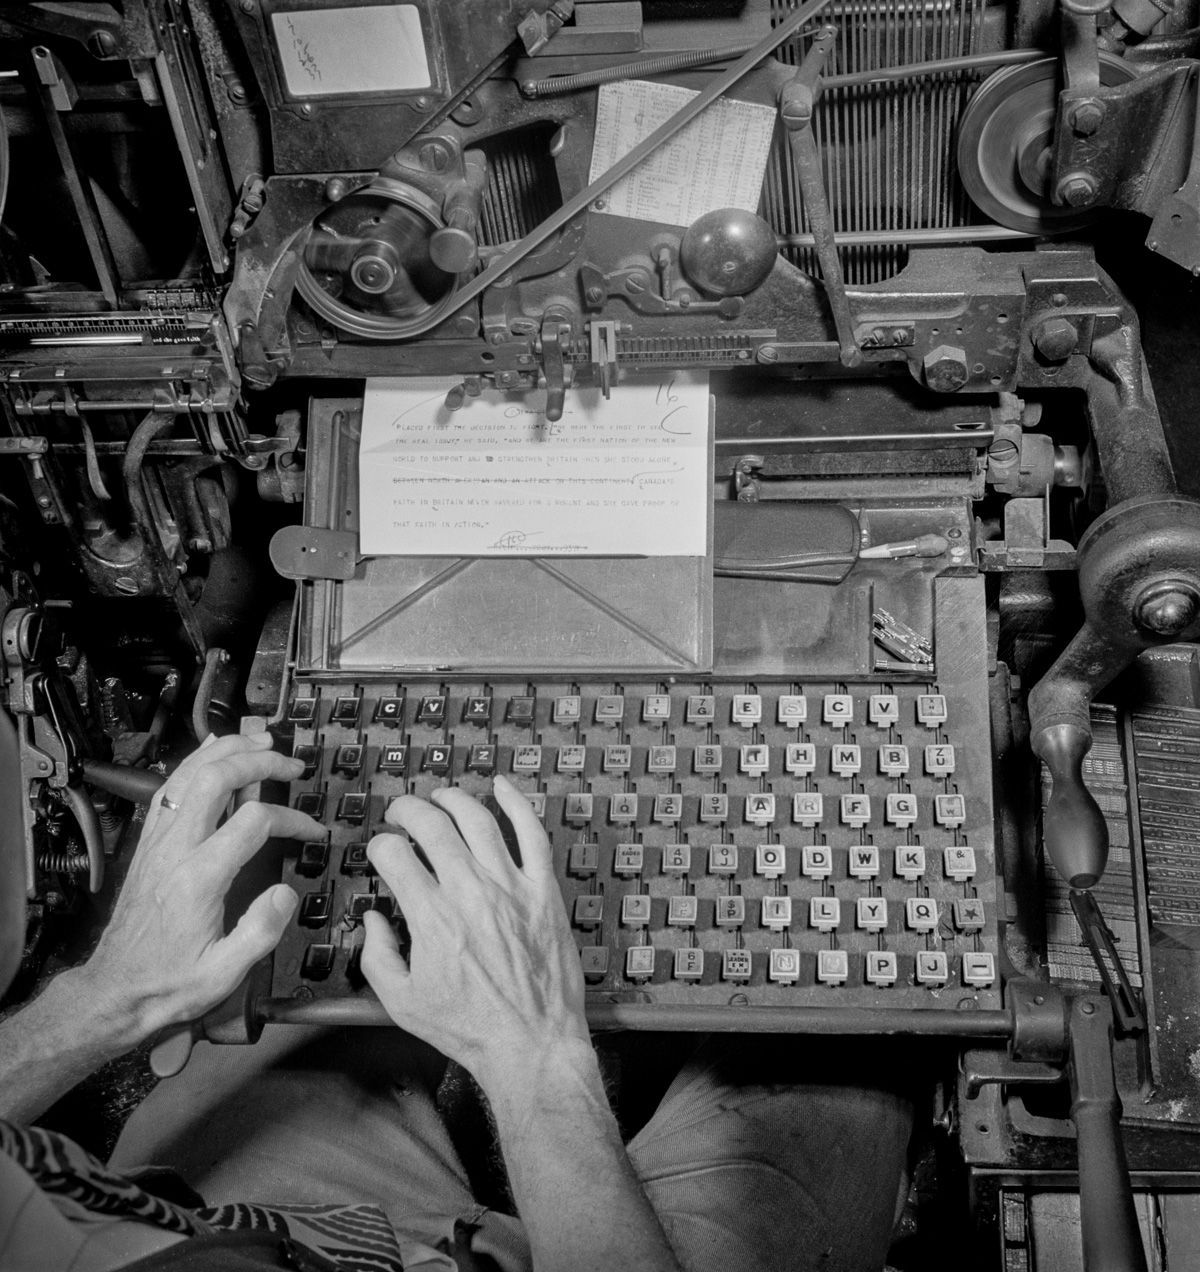 A linotype operator types out a story in the composing room. The linotype is used to cast metal blocks of type which will then be laid out into a page.